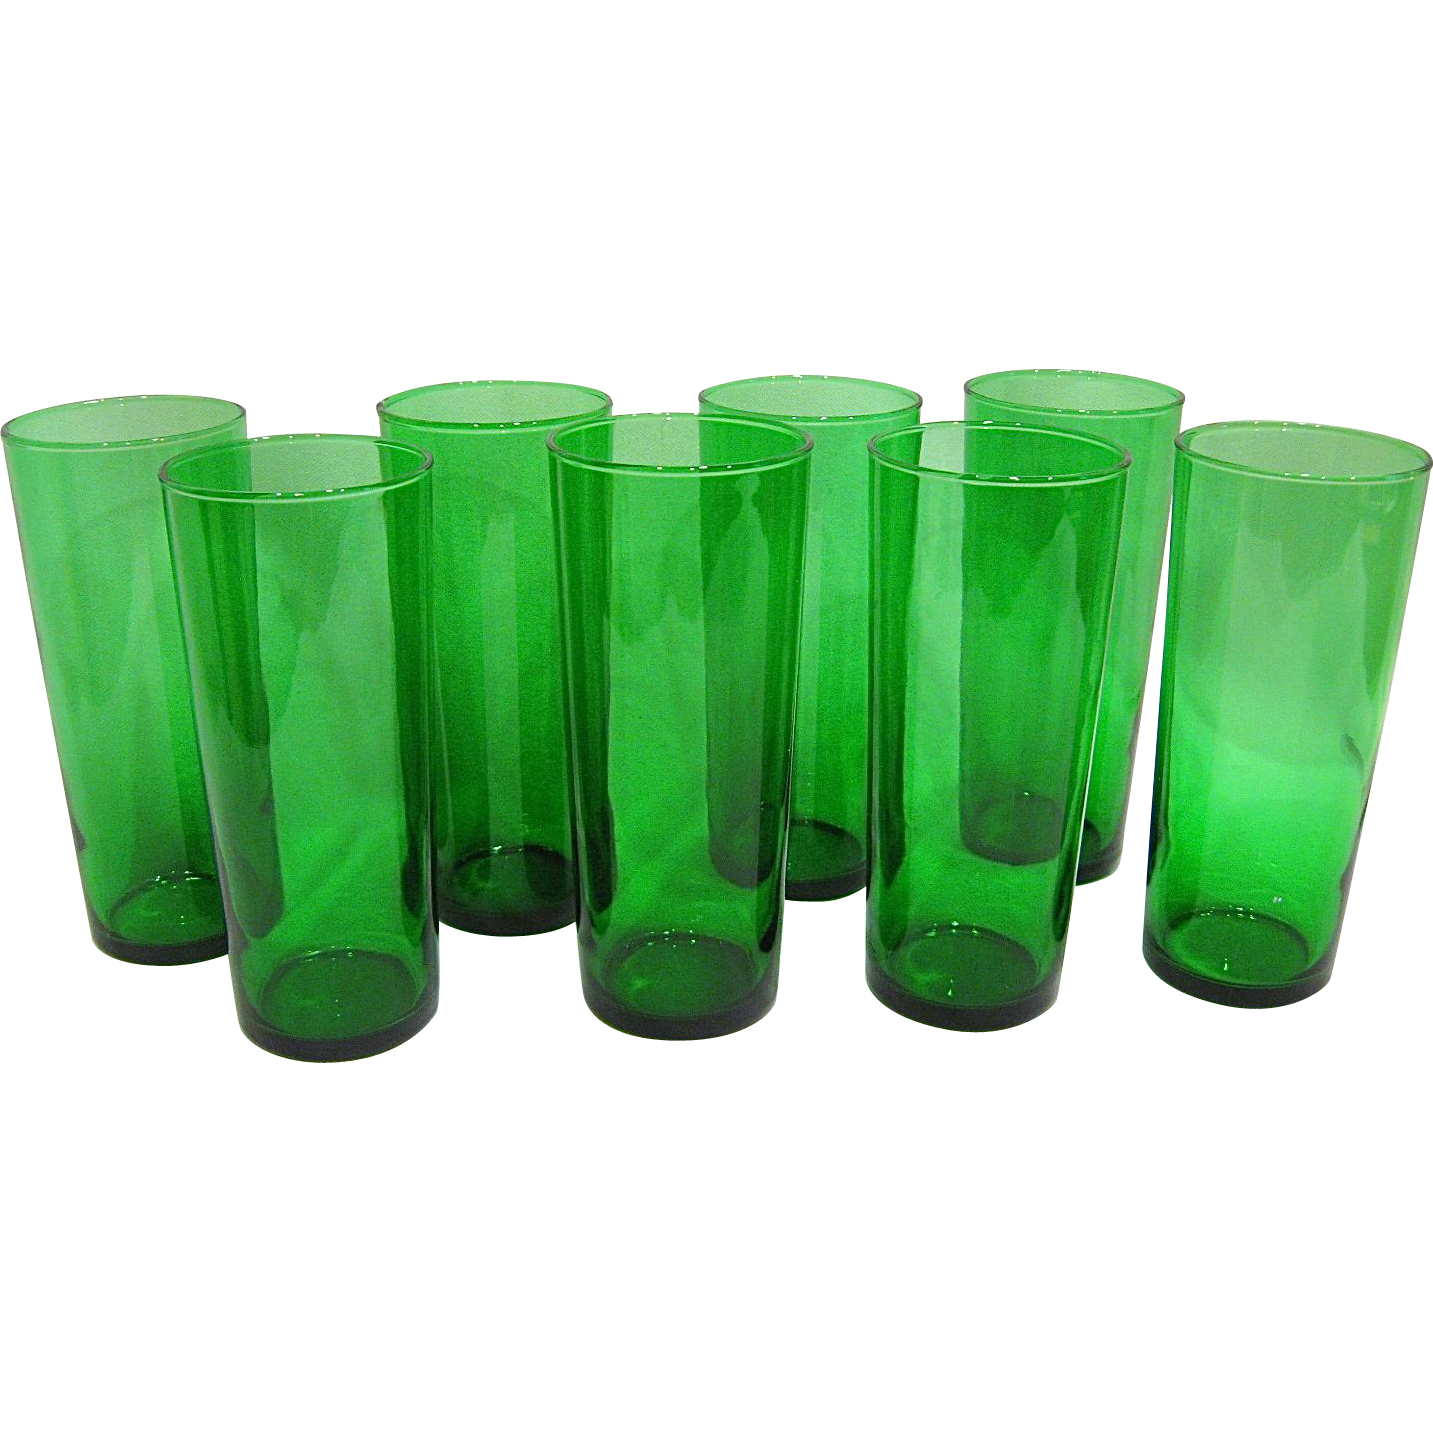 Set of 8 Forest Green 16oz Coolers or Tumblers